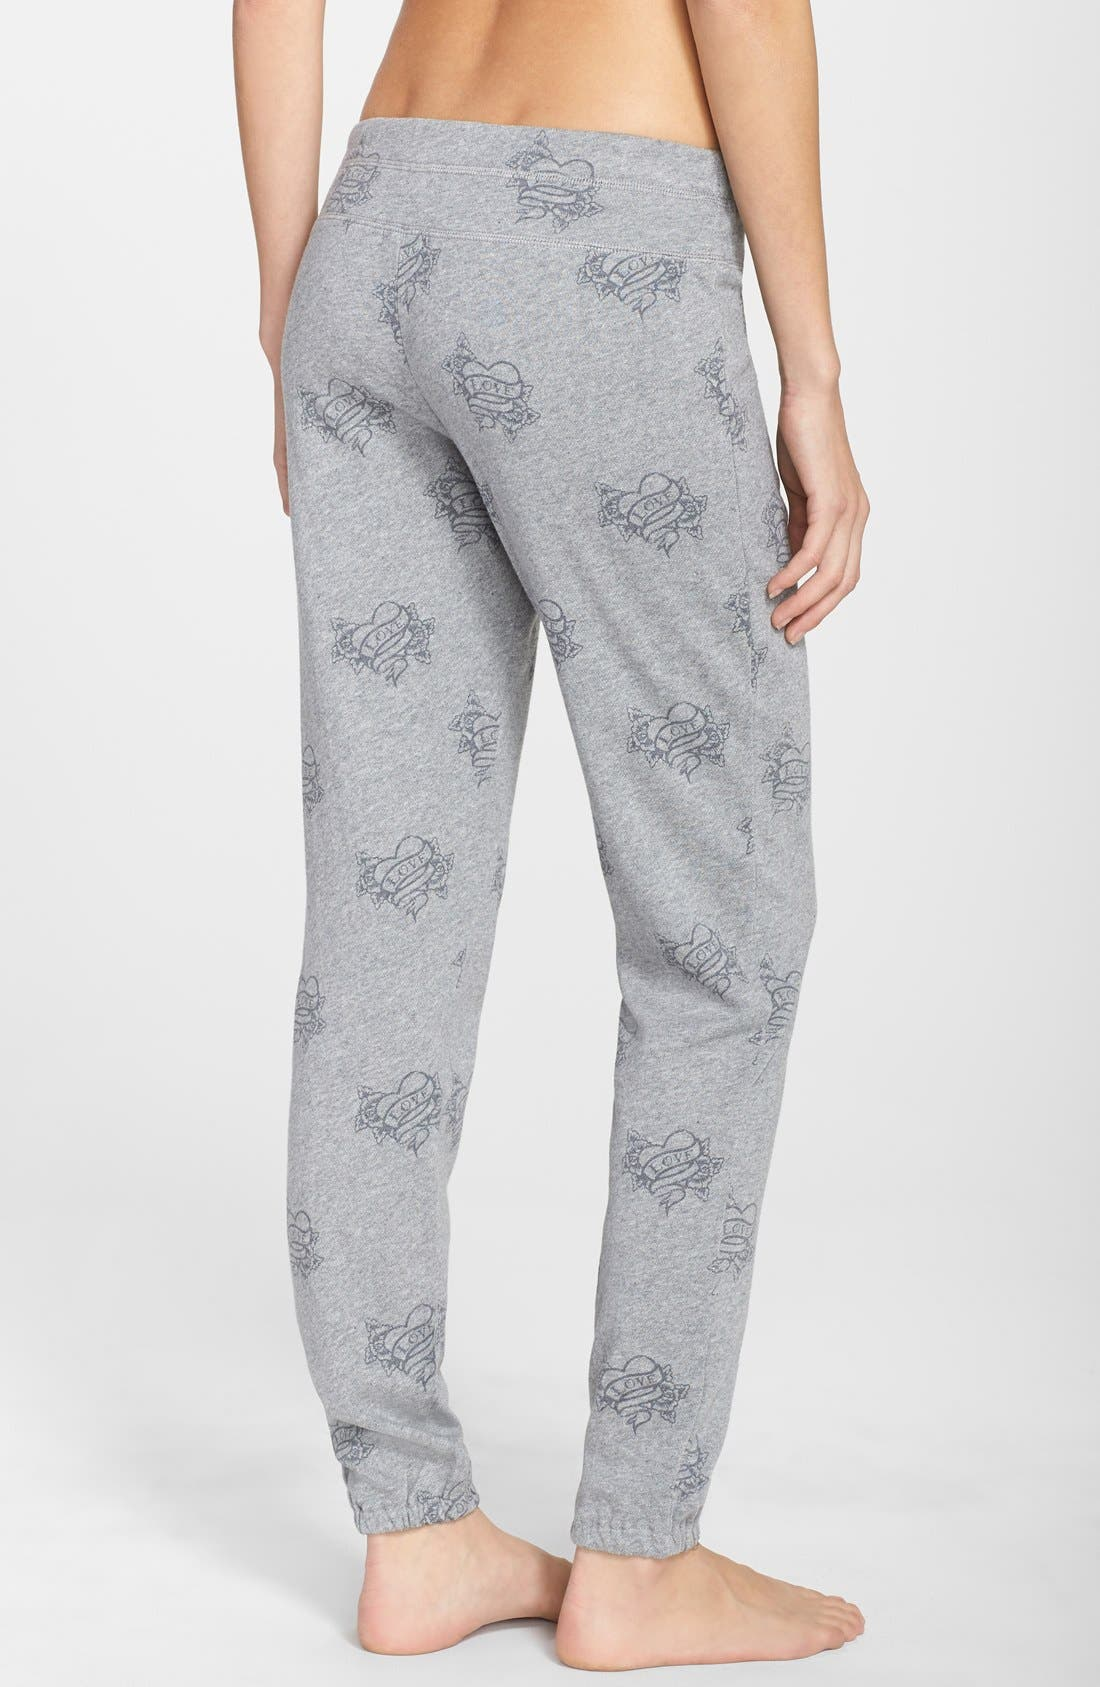 Alternate Image 2  - PJ Salvage 'Love More' Tattoo Print Sweatpants